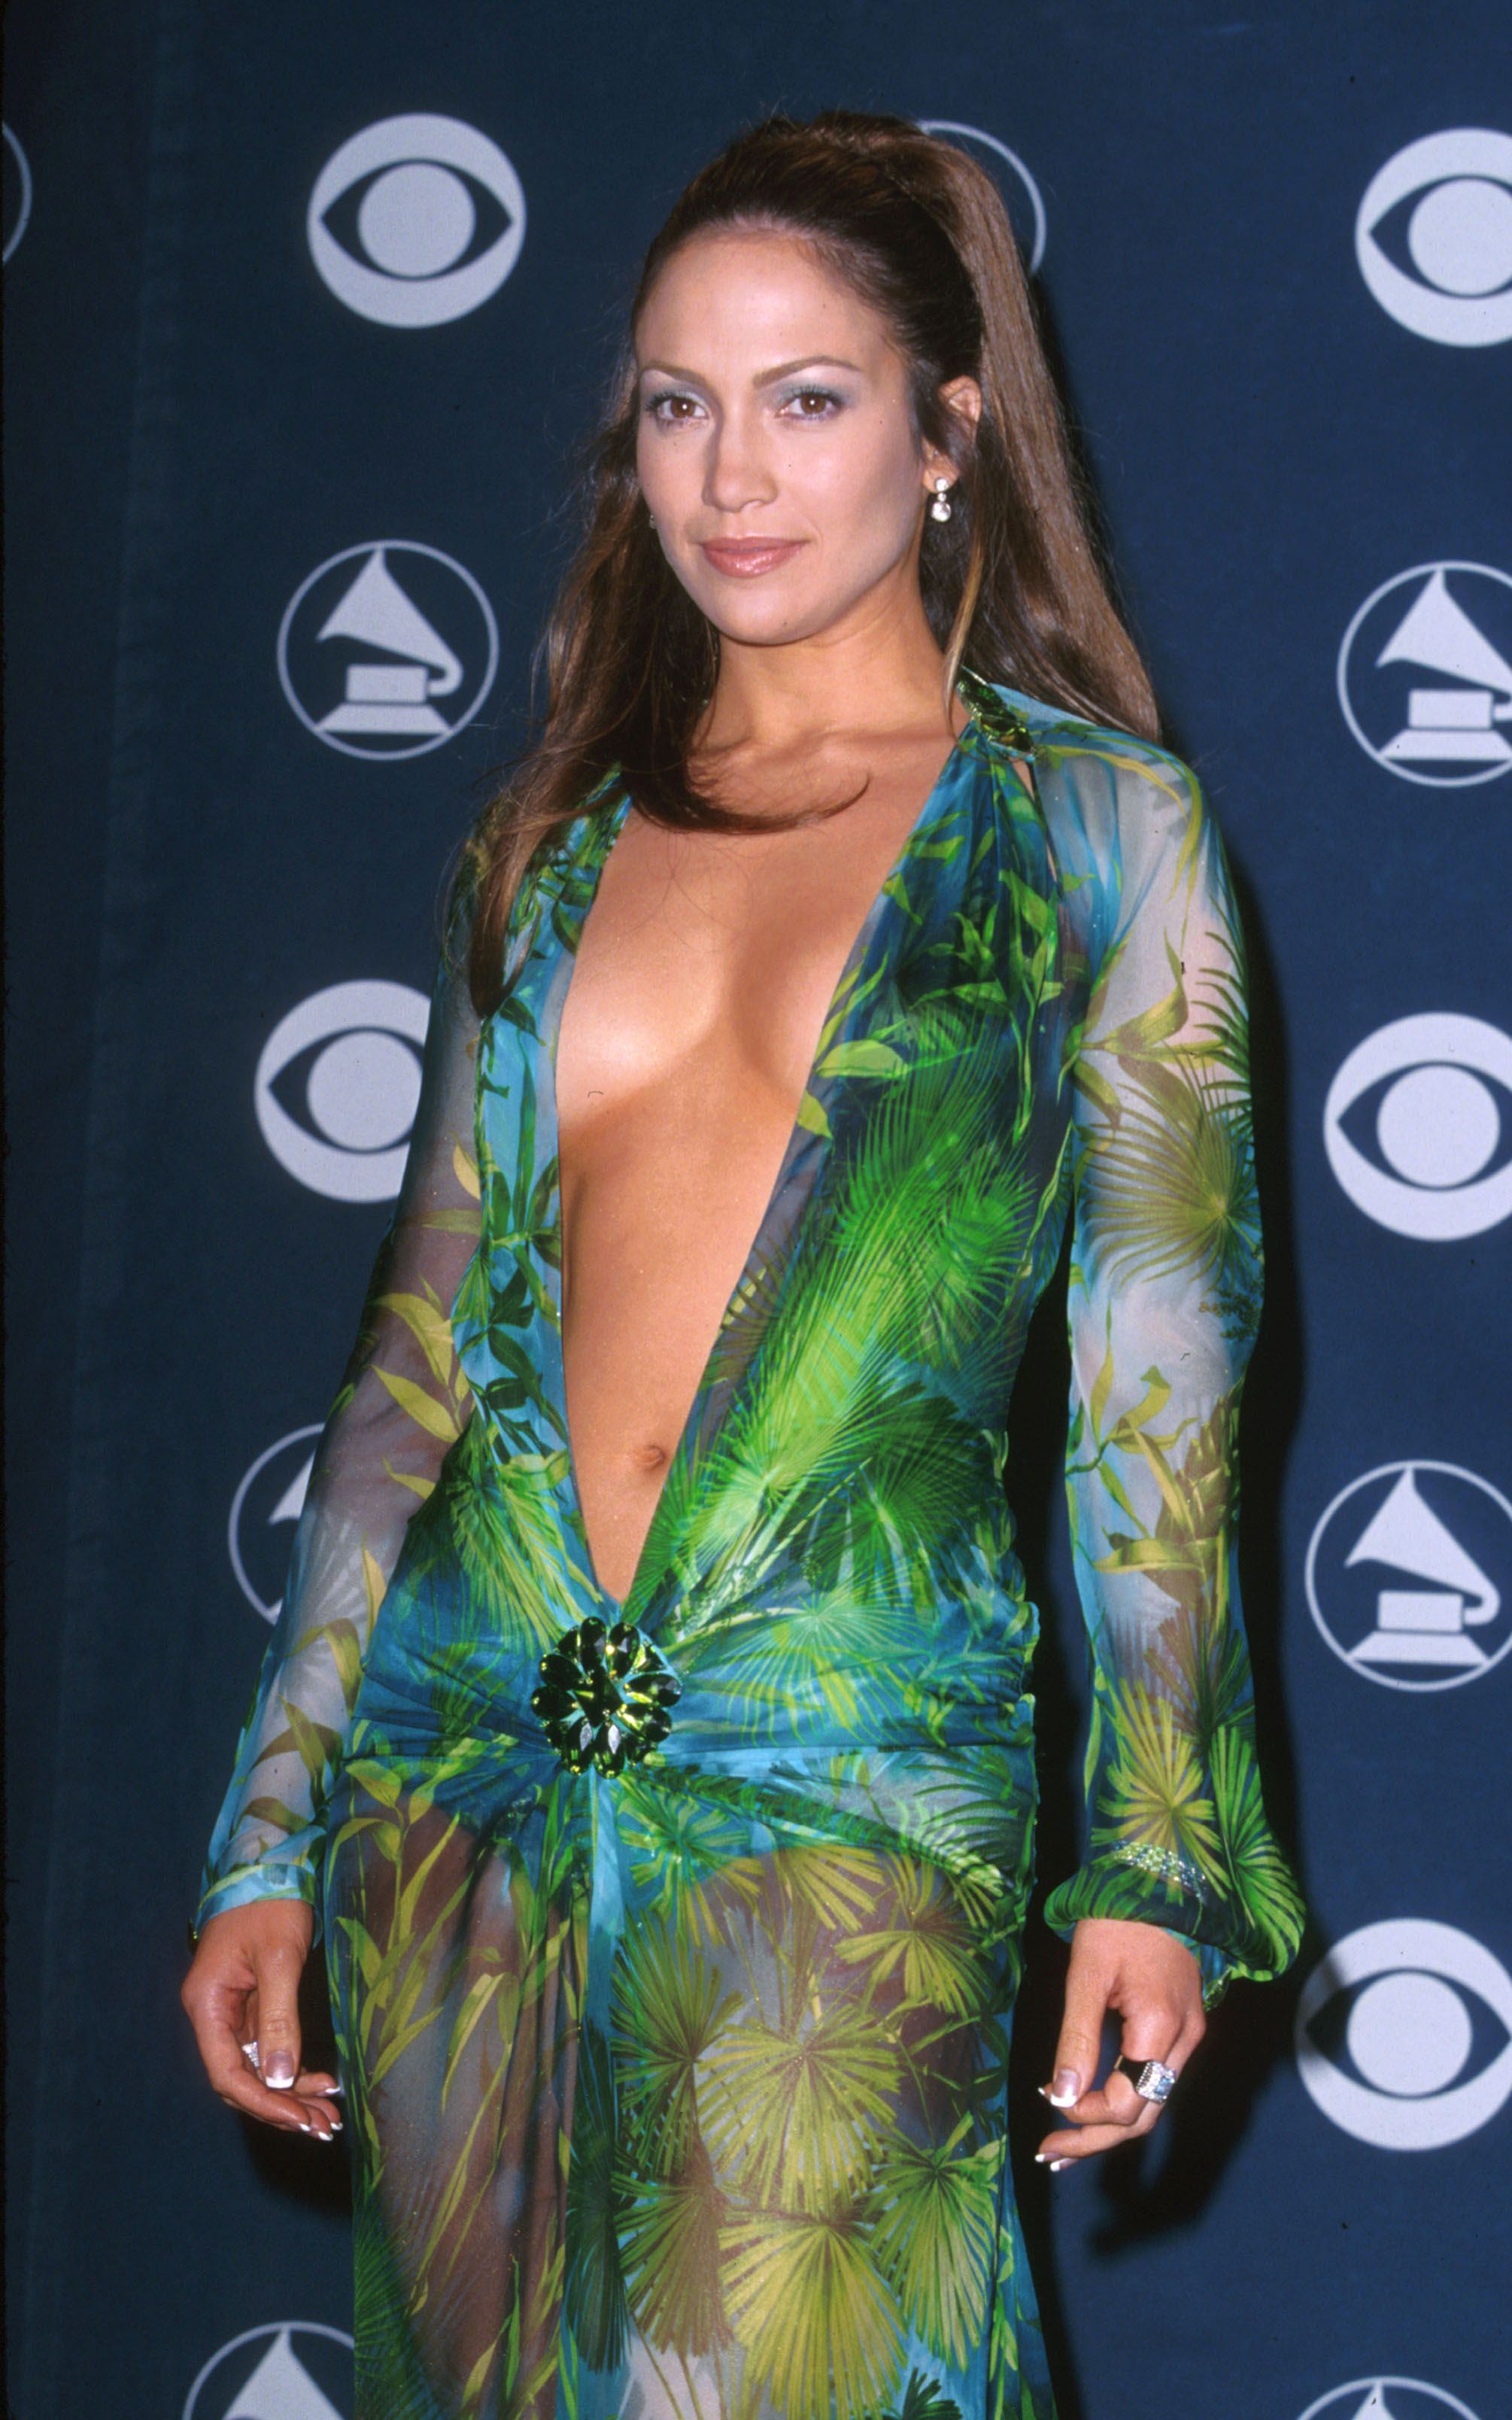 Jennifer Lopez Talks Fashion and Her Infamous 2000 Grammy Dress ...